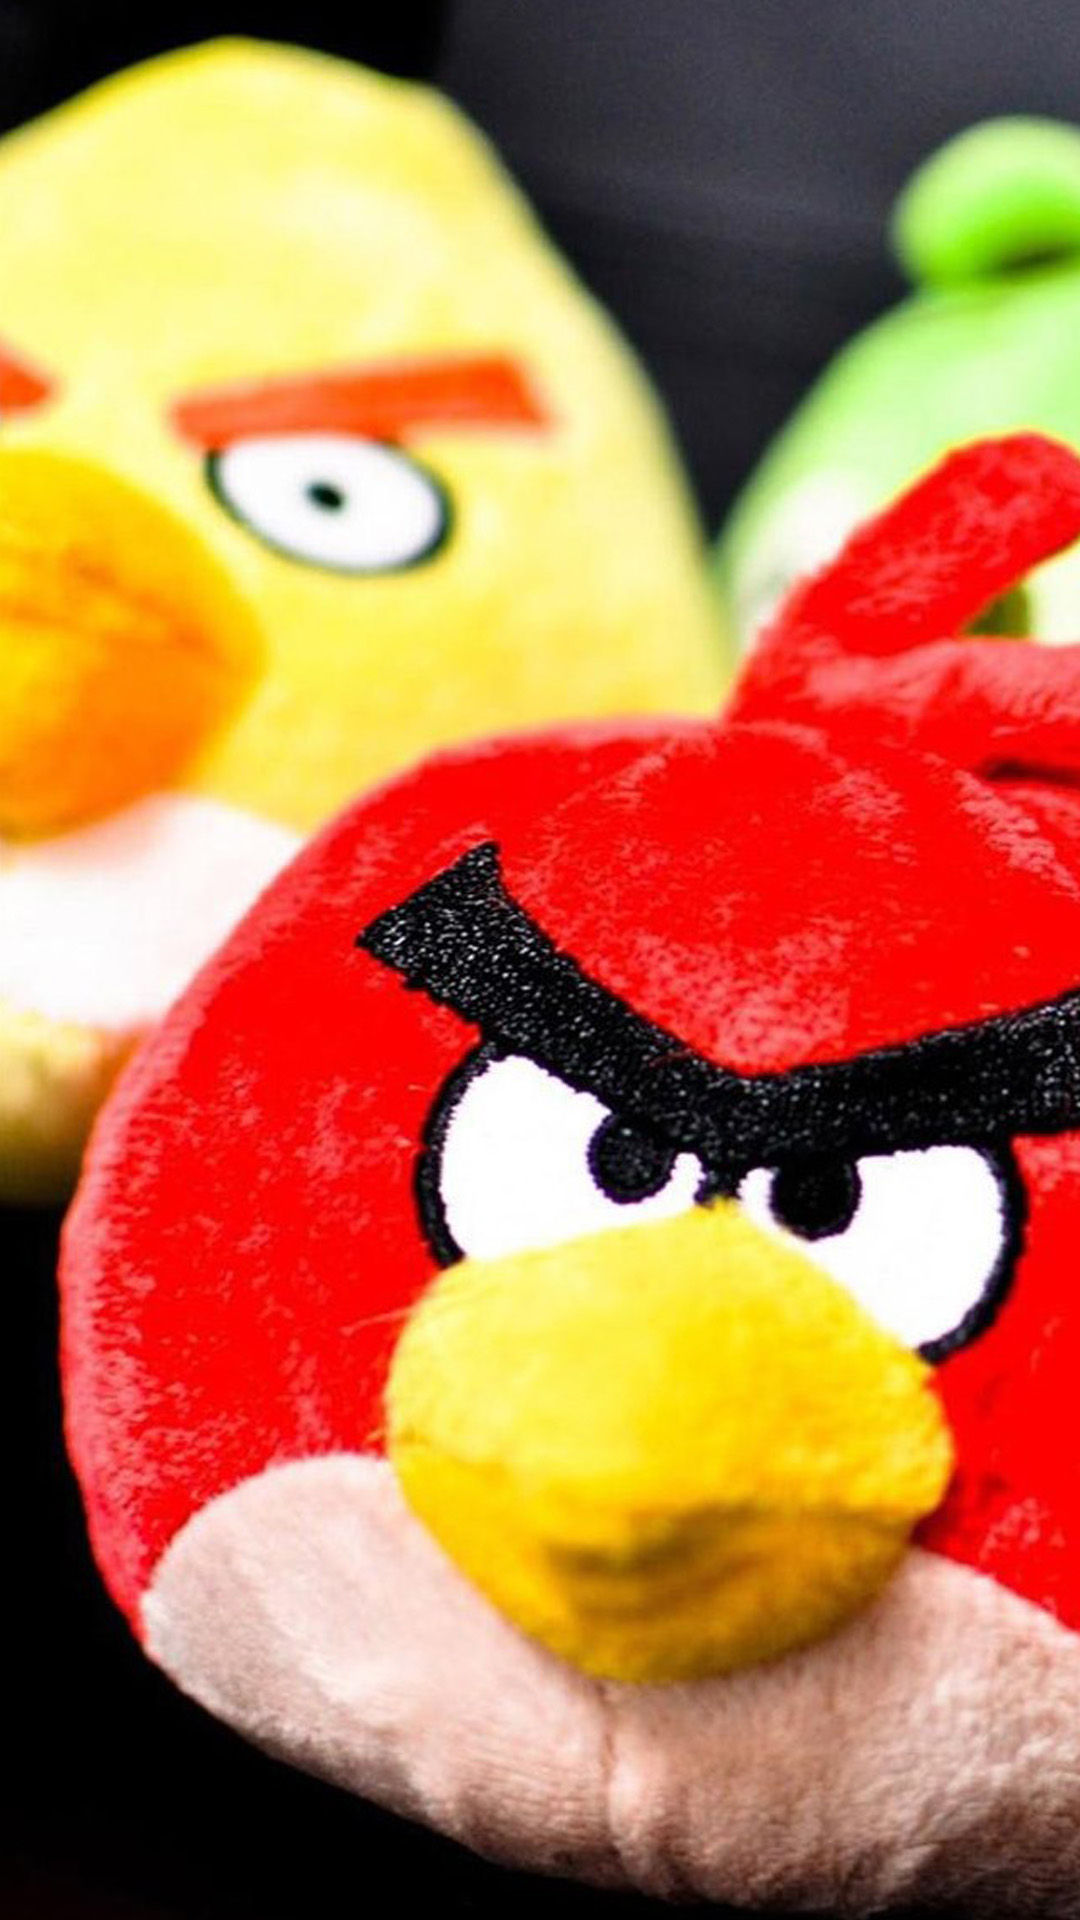 Real Angry Bird Toy